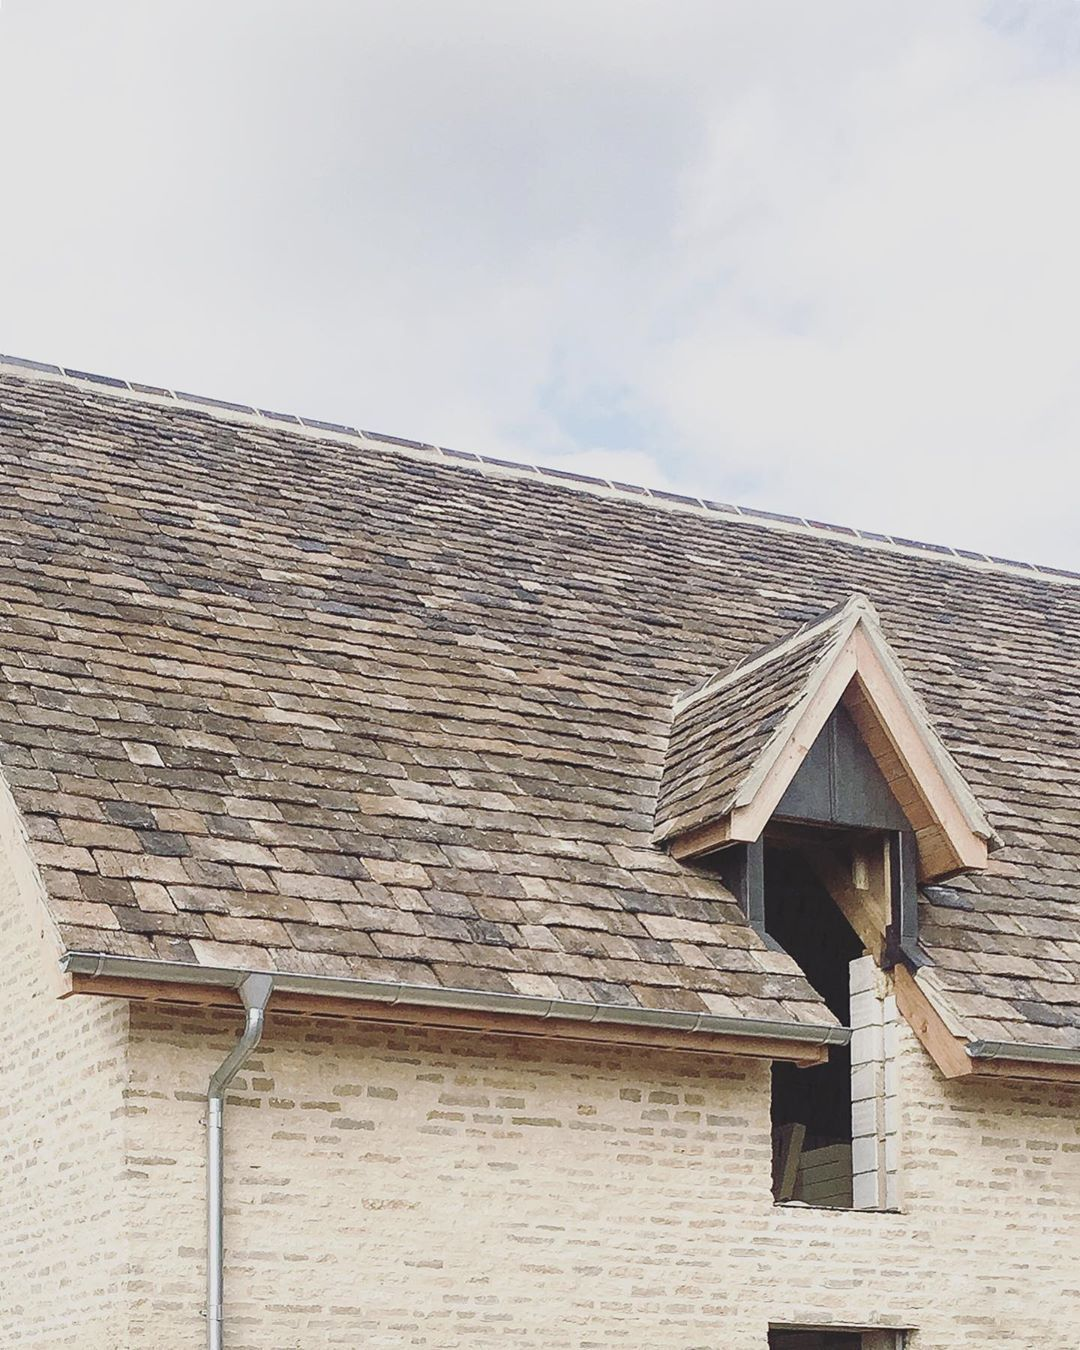 Louise Holt On Instagram Scaffolding Coming Down On Site Revealing The Architectural Details For This New Fami In 2020 Architecture Details Cotswolds Home And Family